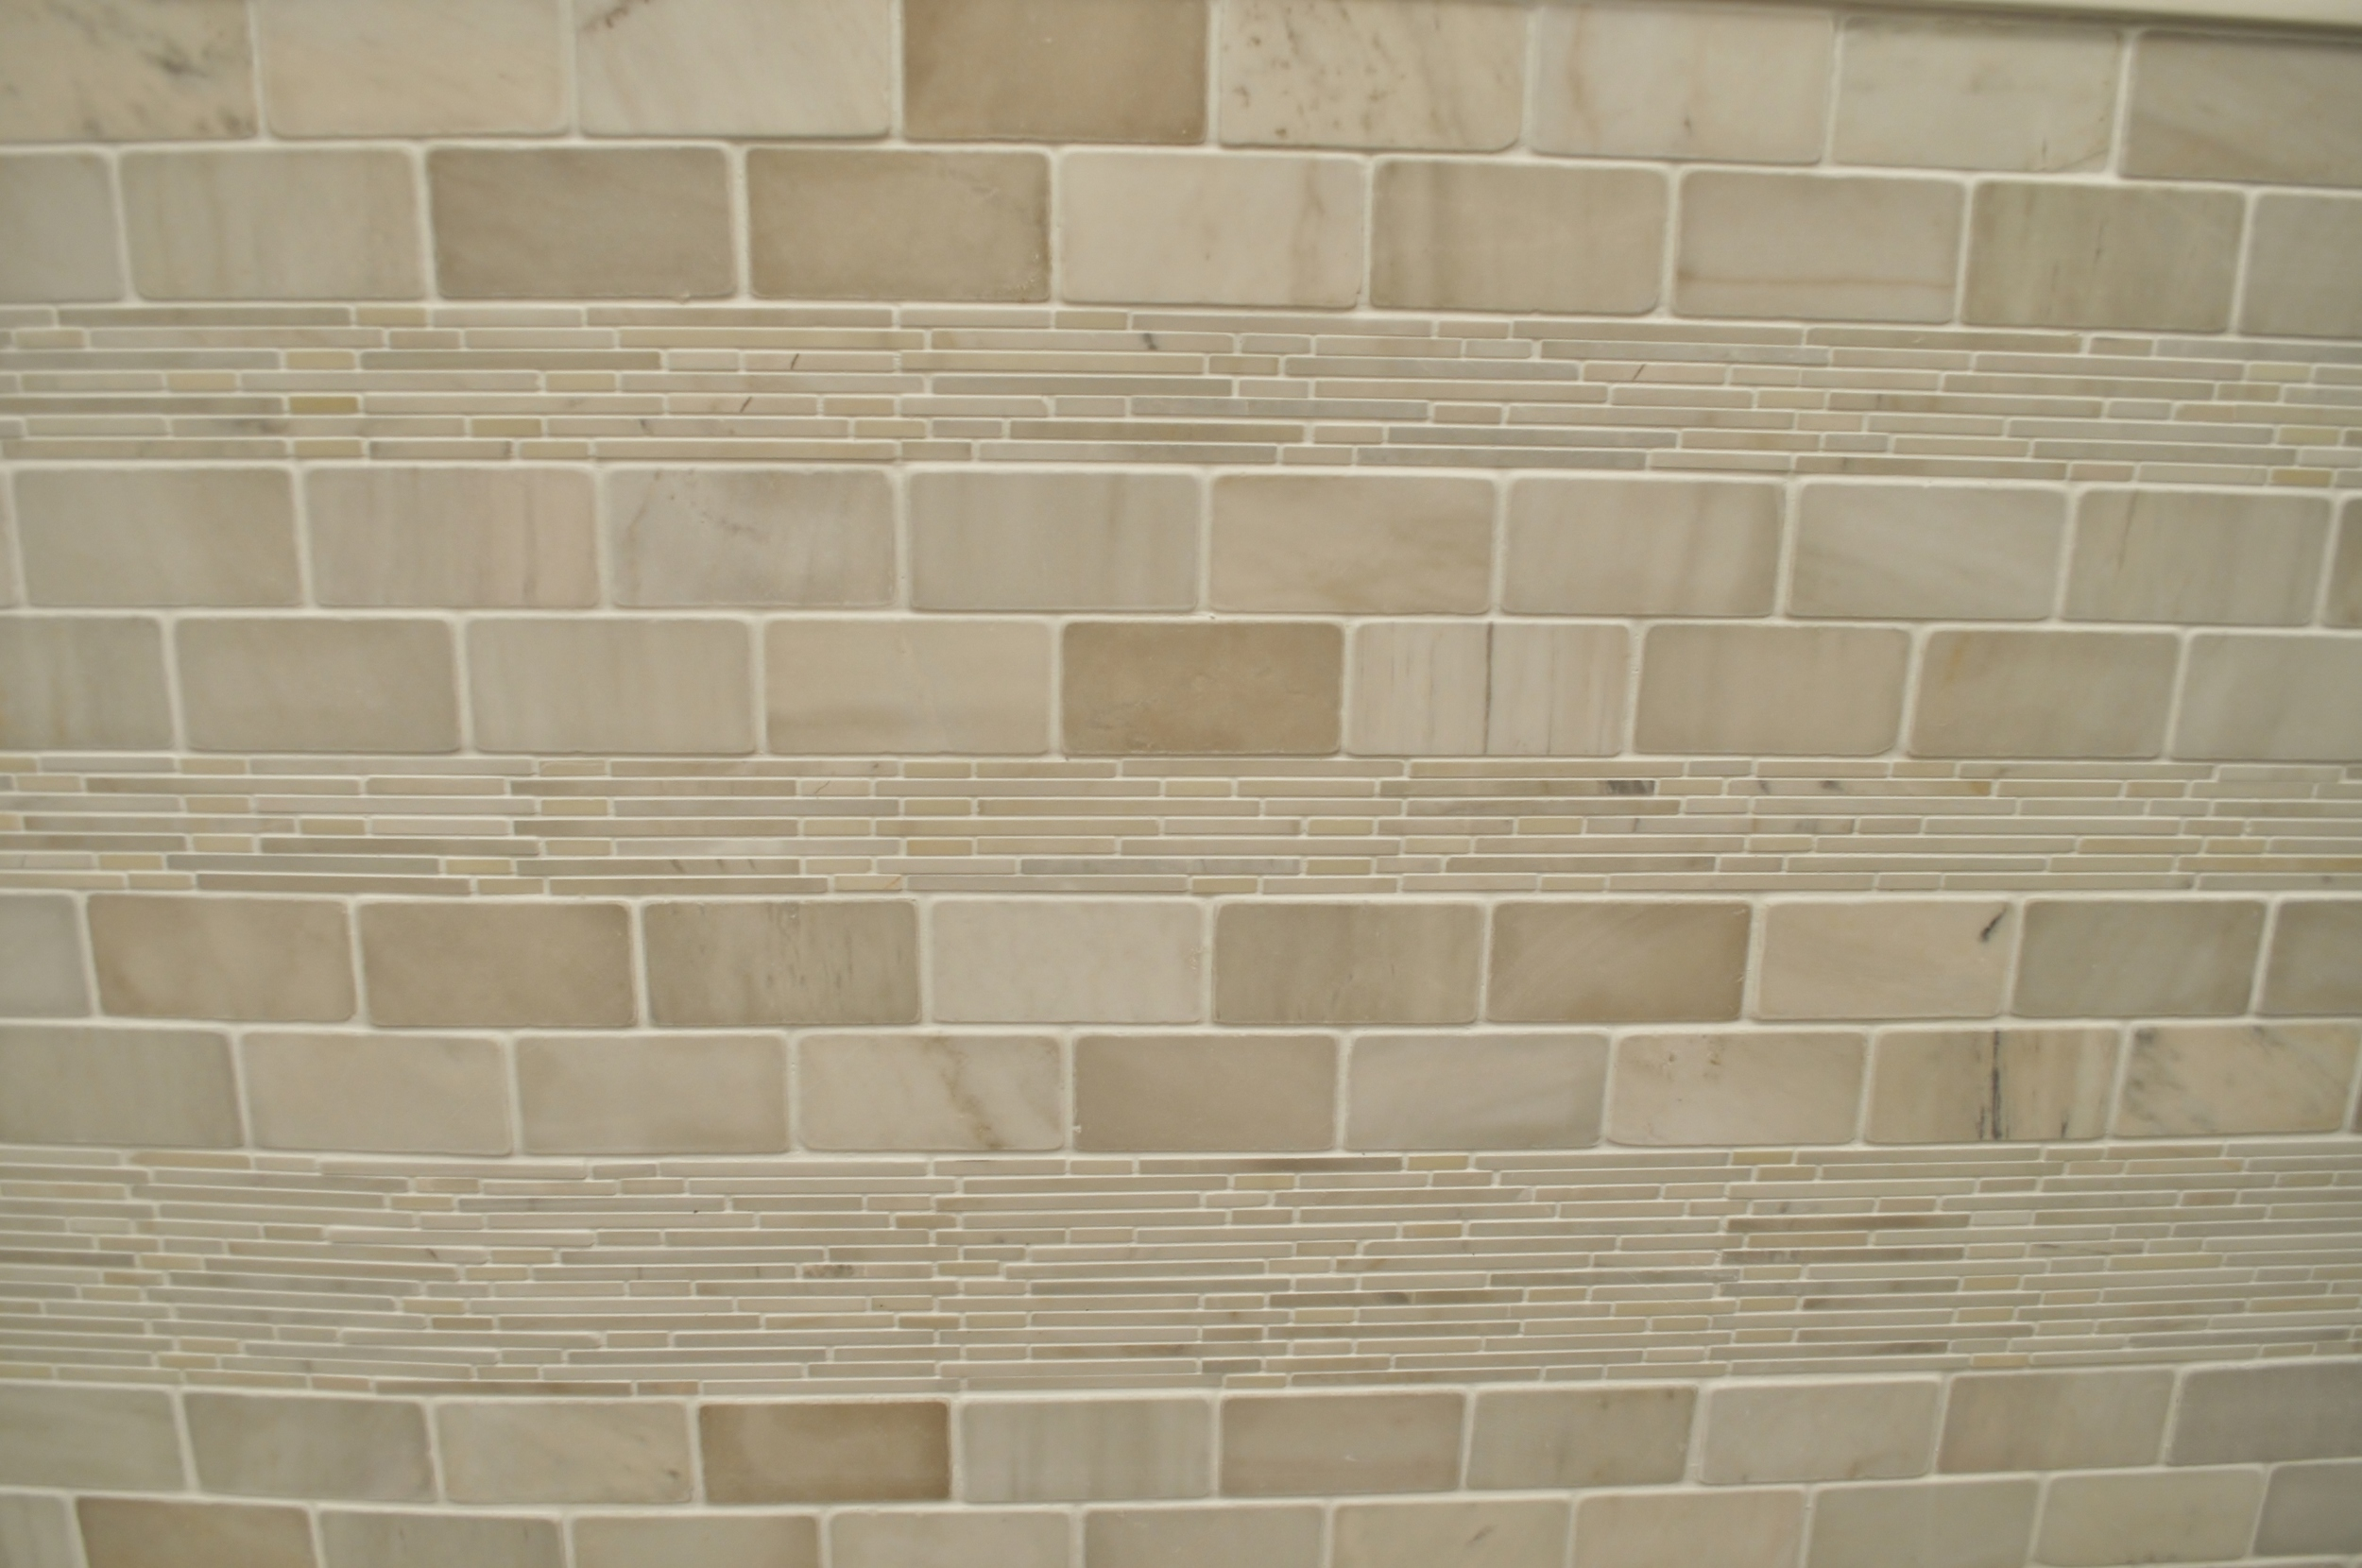 Tile Pattern, After Grout